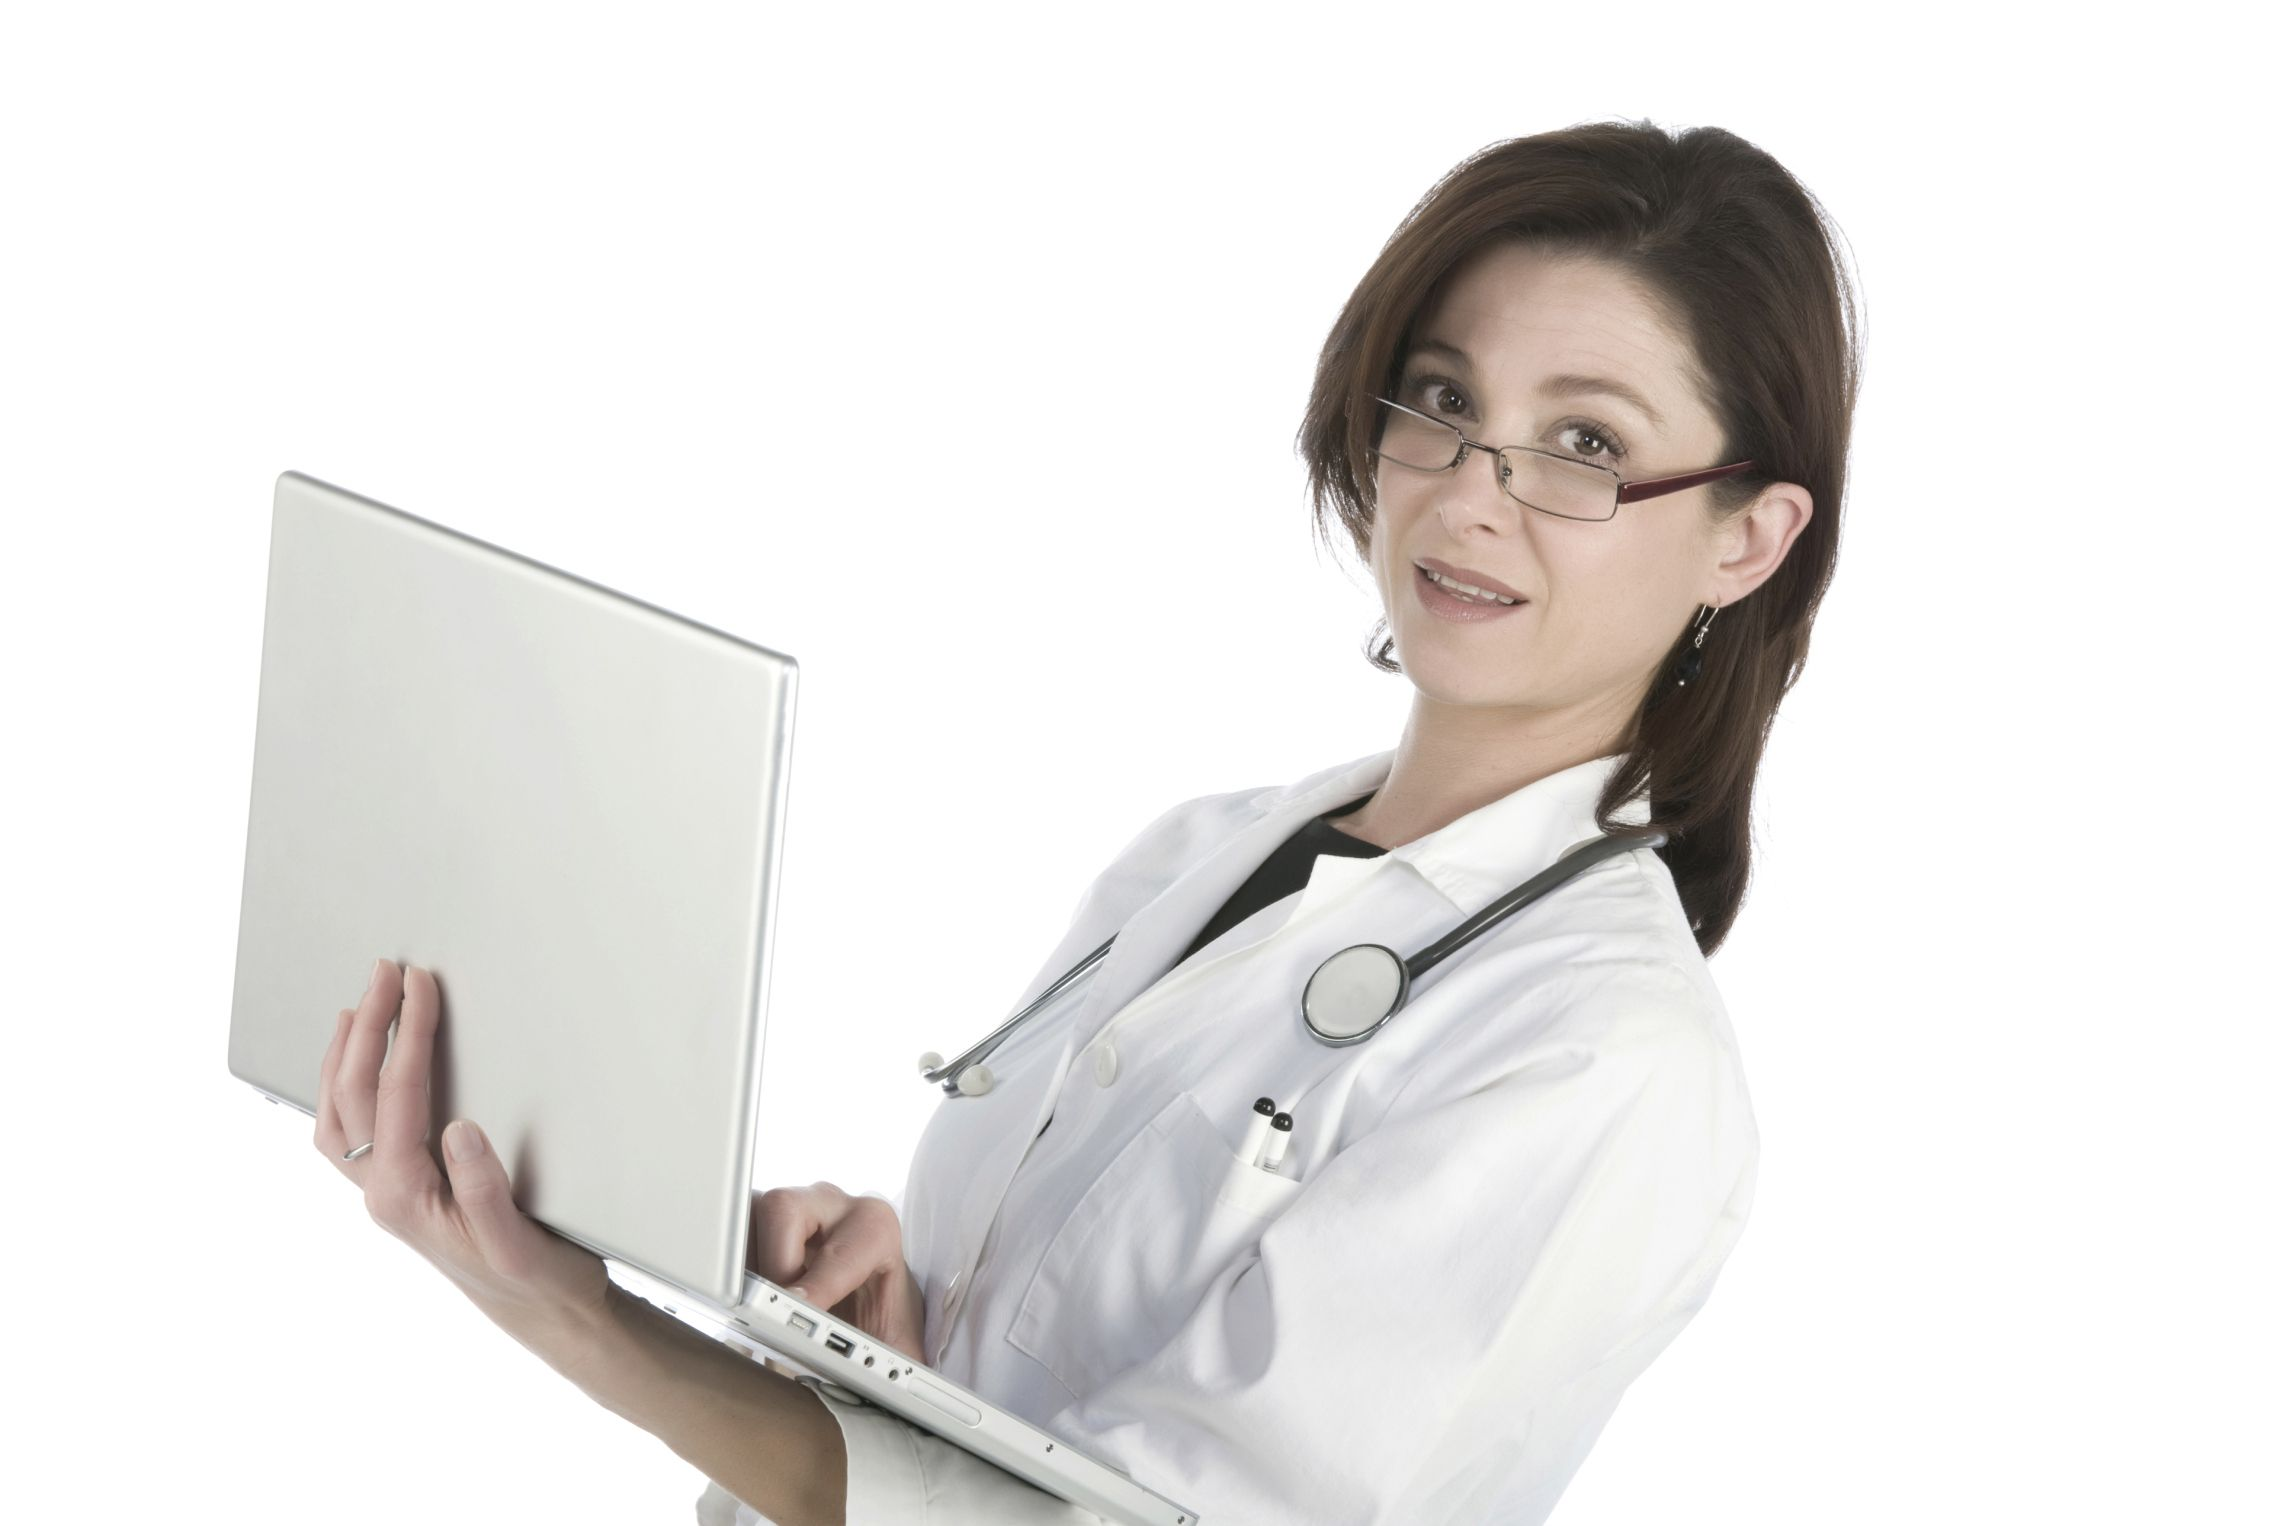 Pin on Medical Coding Information